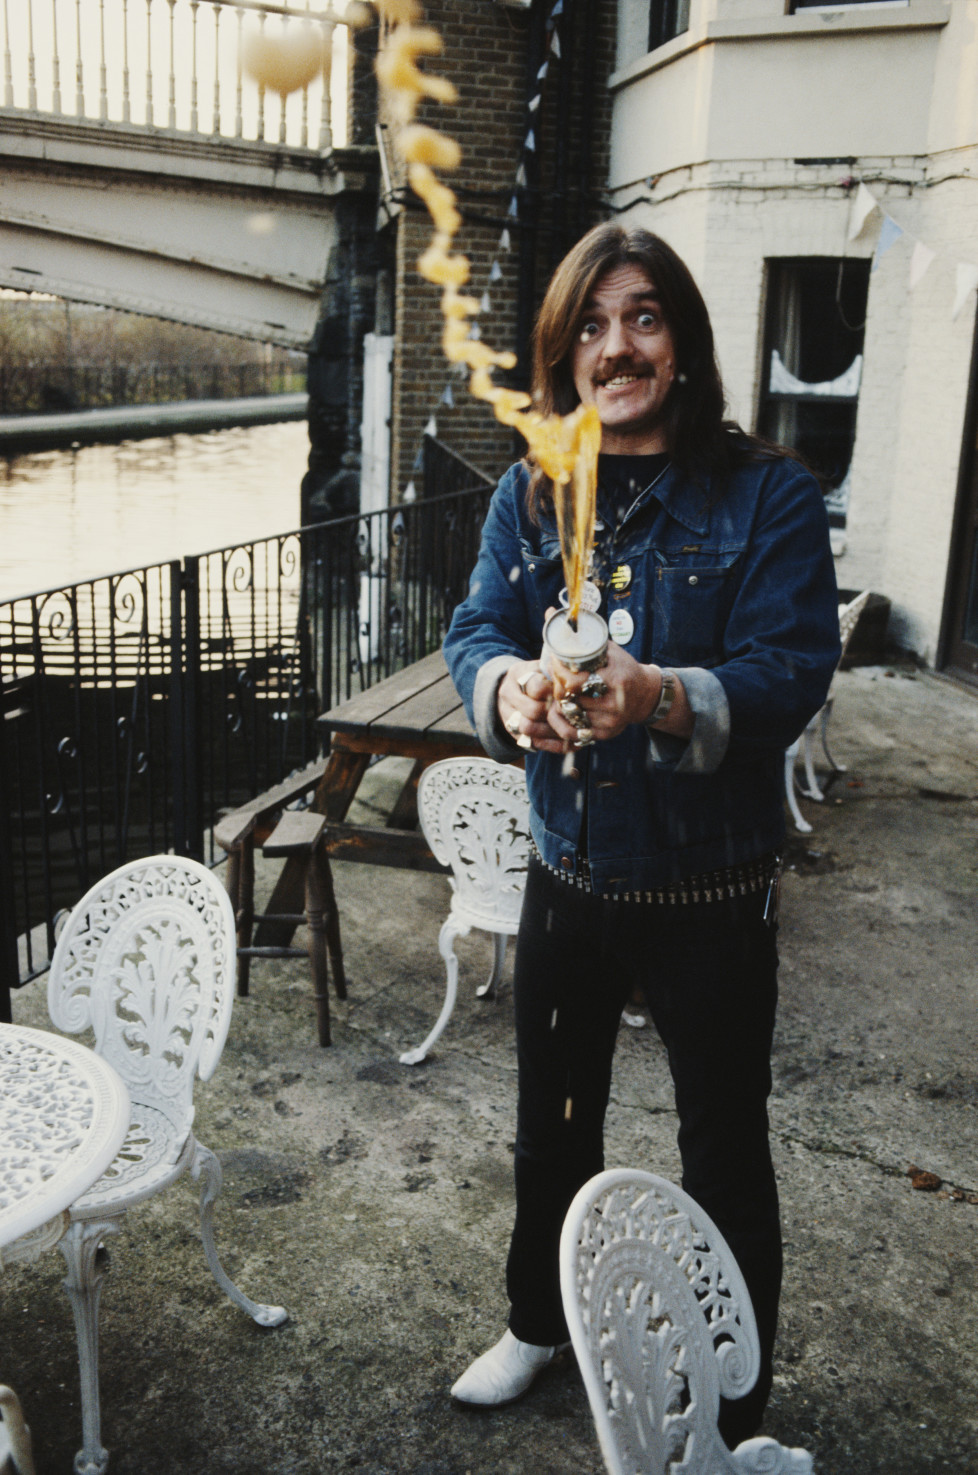 English rock musician and lead vocalist of the rock and roll band Motörhead, Lemmy (Ian Fraser 'Lemmy' Kilmister), spraying beer outside the Carlton Bridge Tavern, Grand Union Canal, London, circa 1985. (Photo by Tony Mottram/Getty Images)